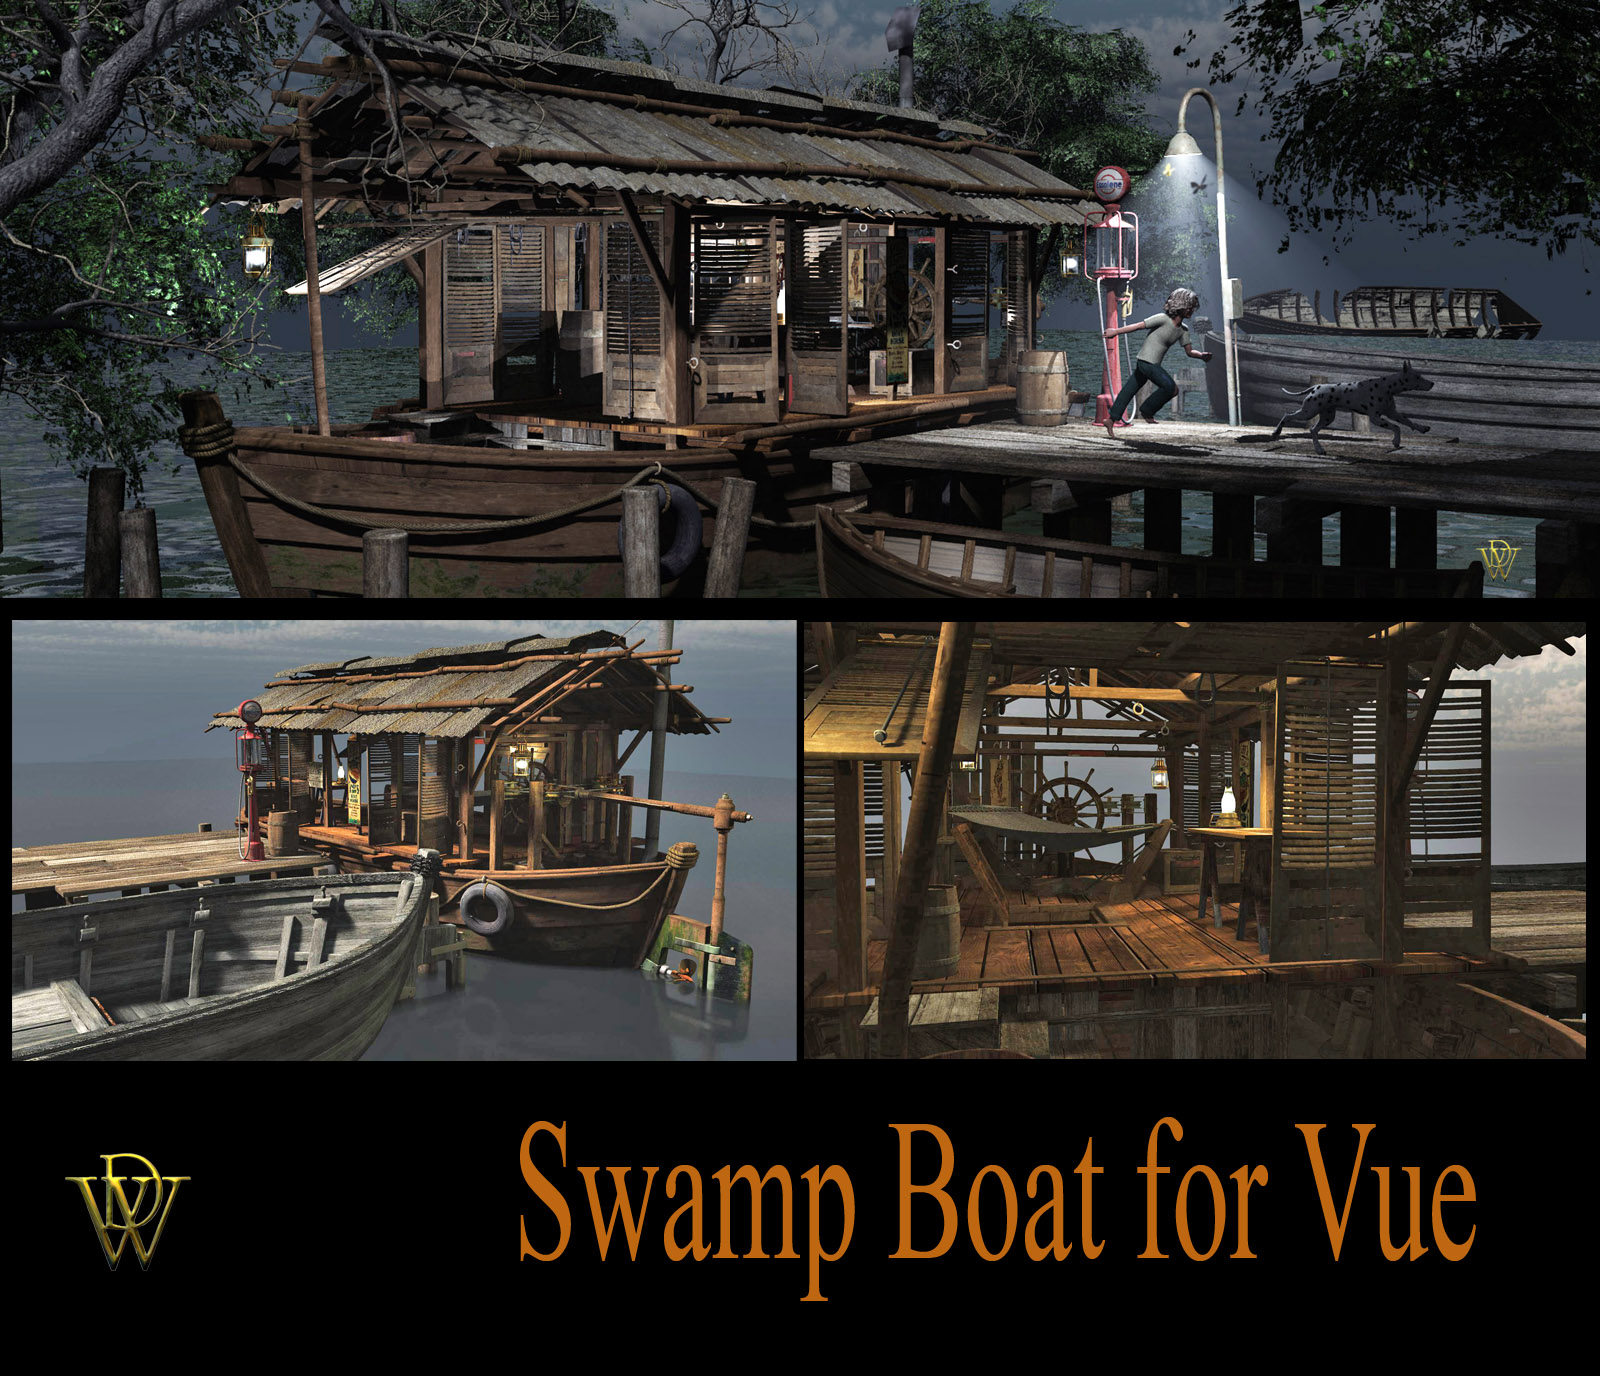 MS17 Swamp House Boat for Vue